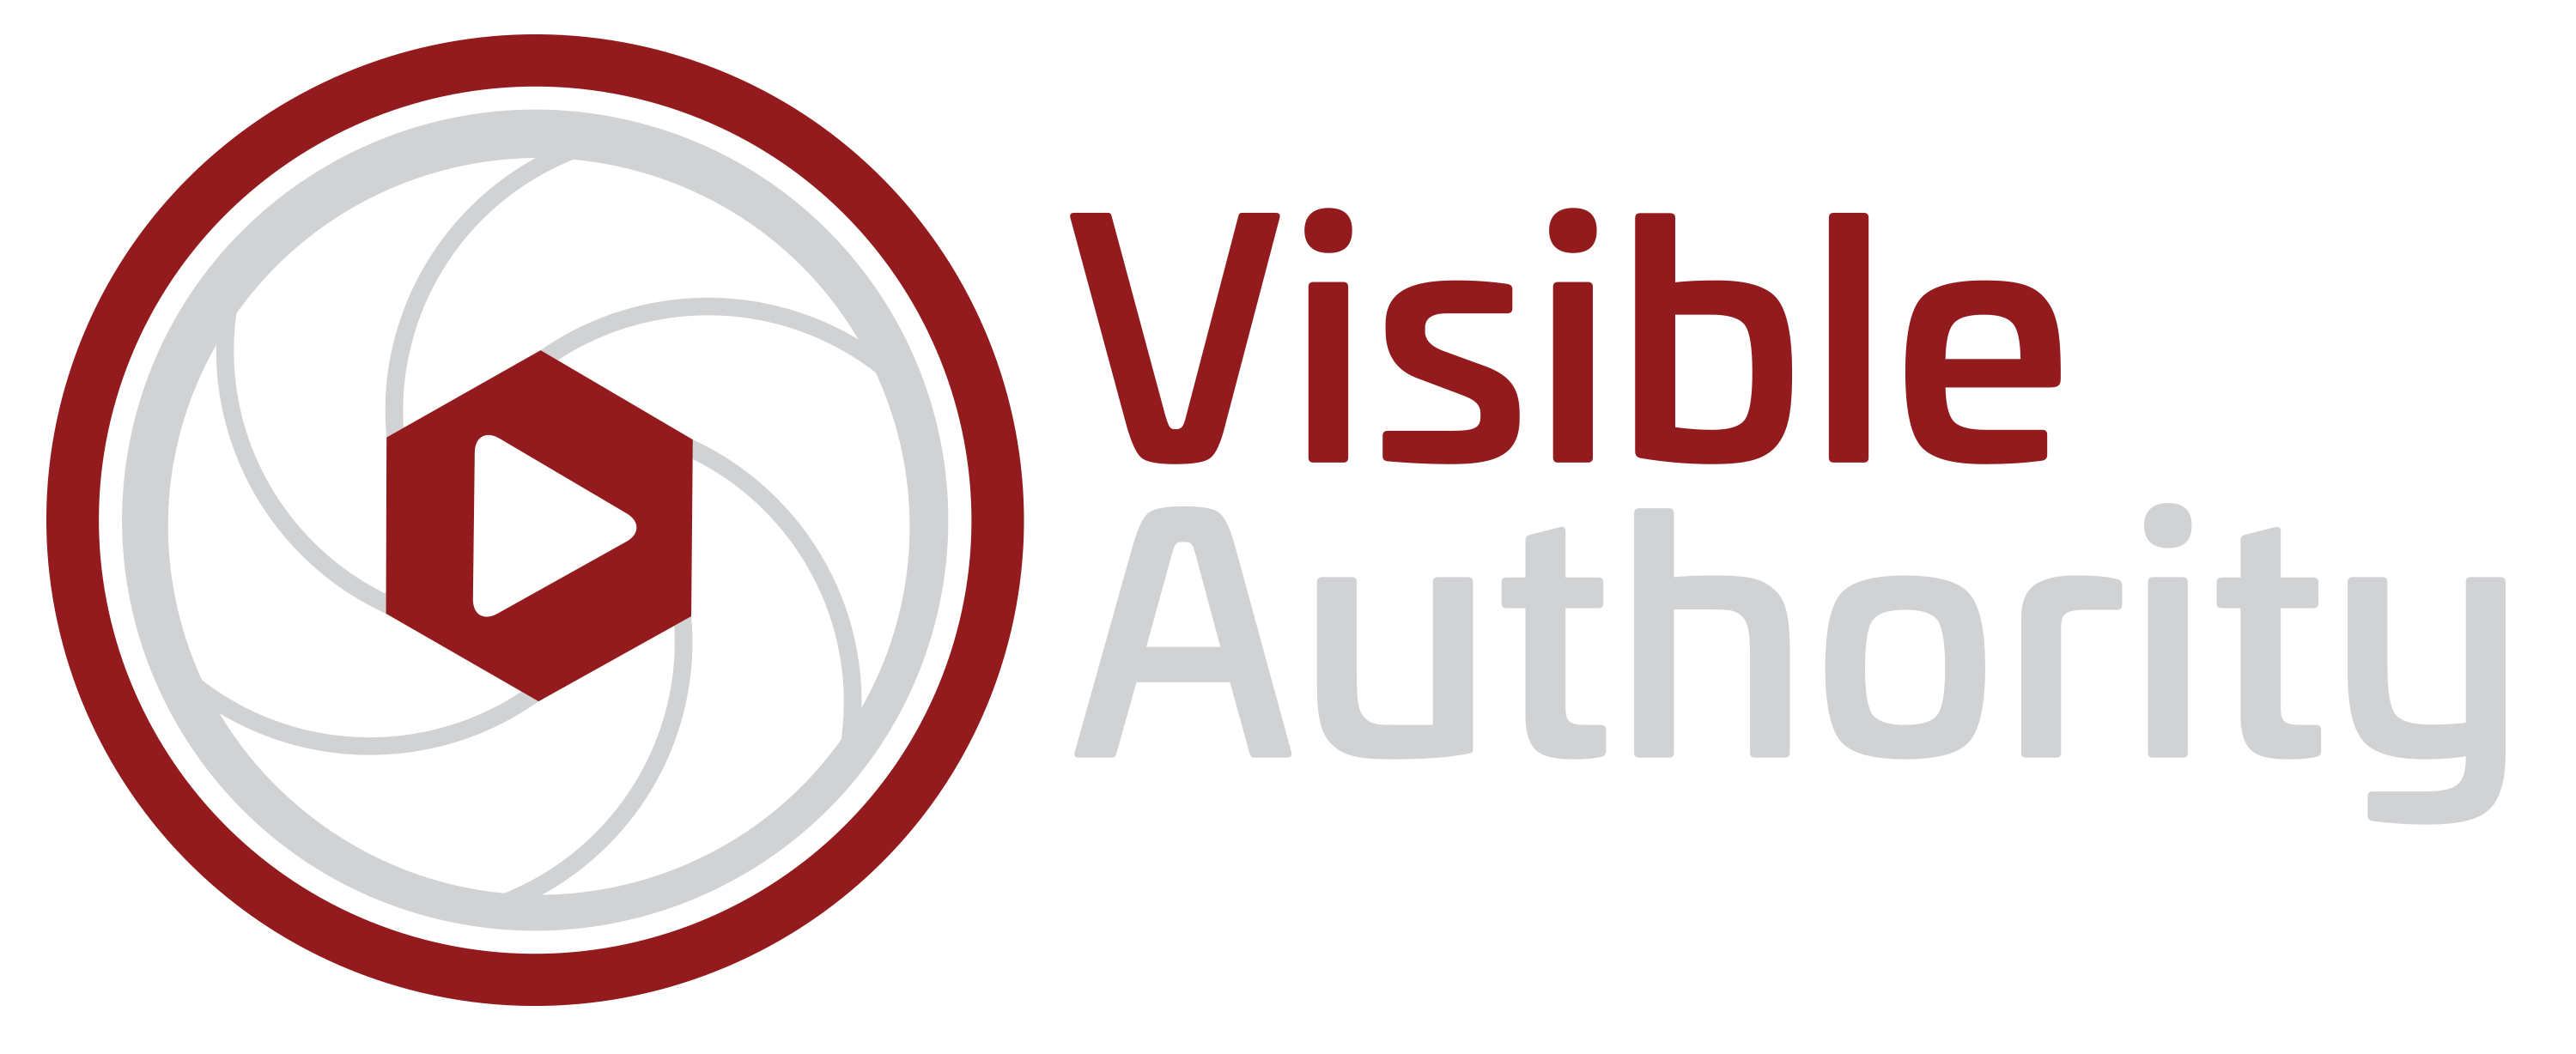 make visible authority logo light